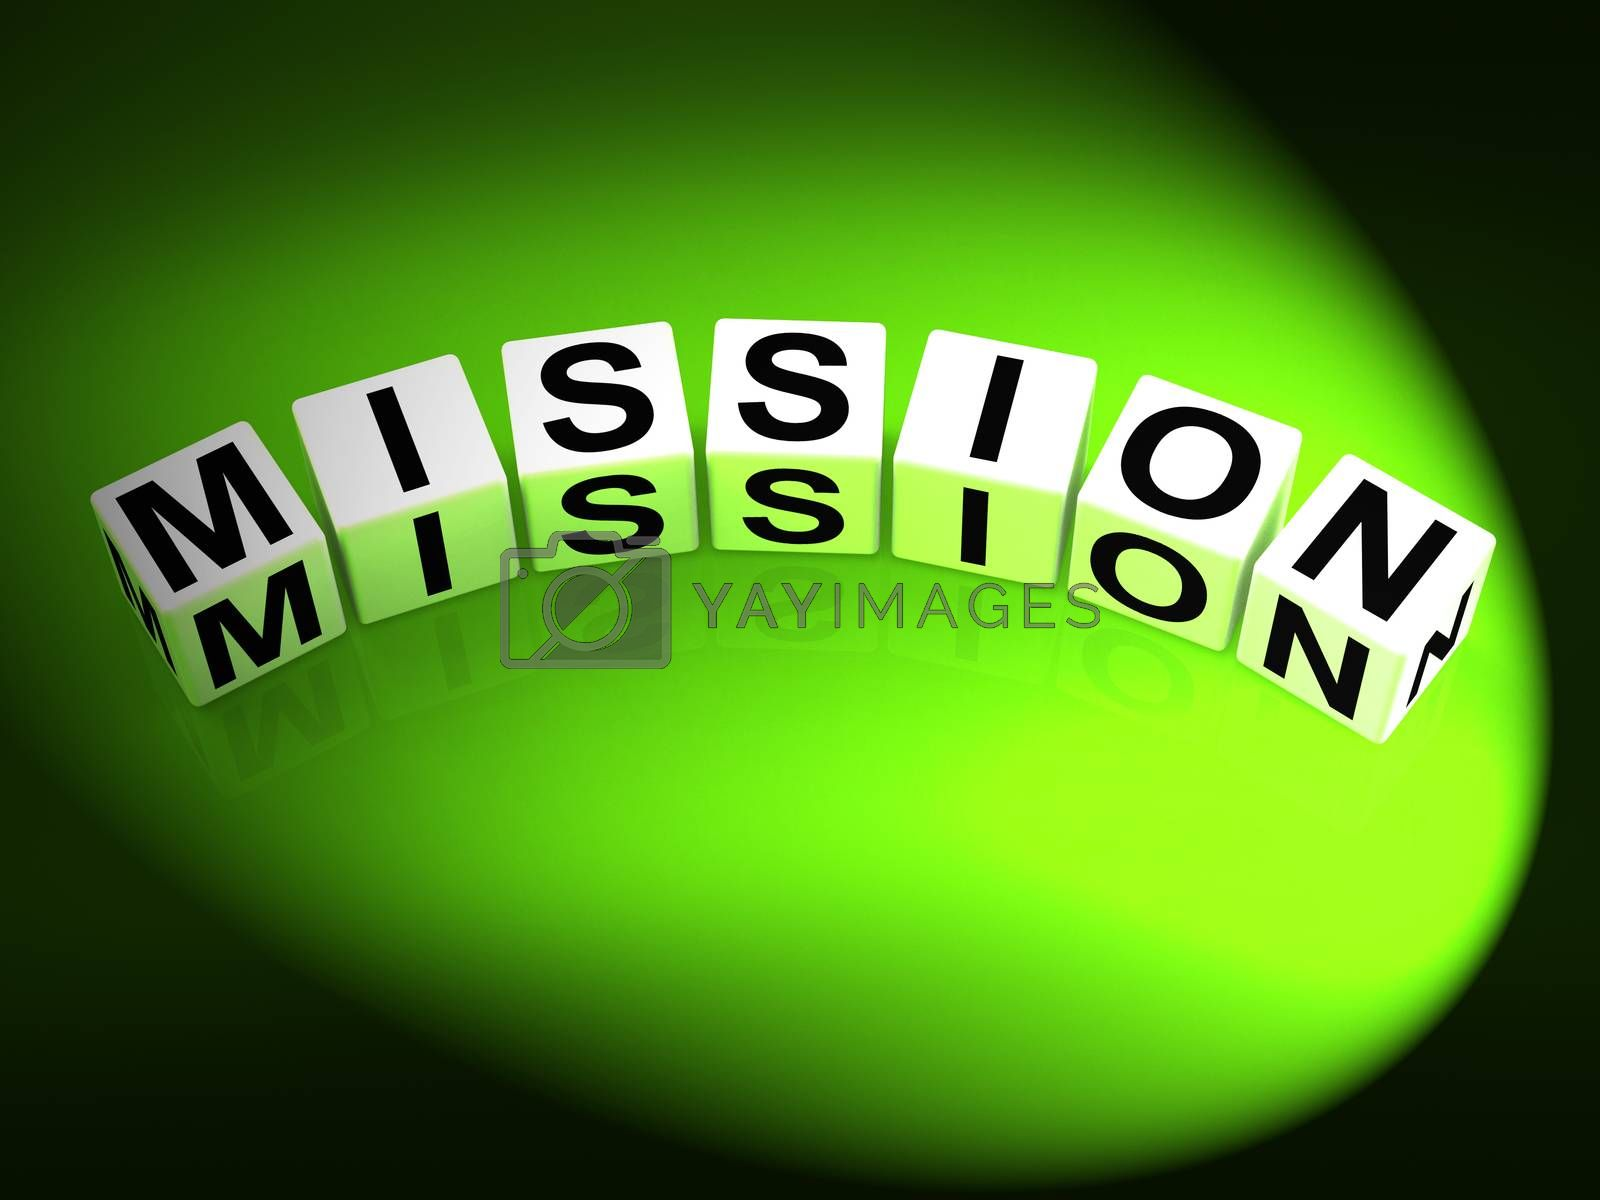 Mission Dice Show Mission Strategies and Goals by stuartmiles